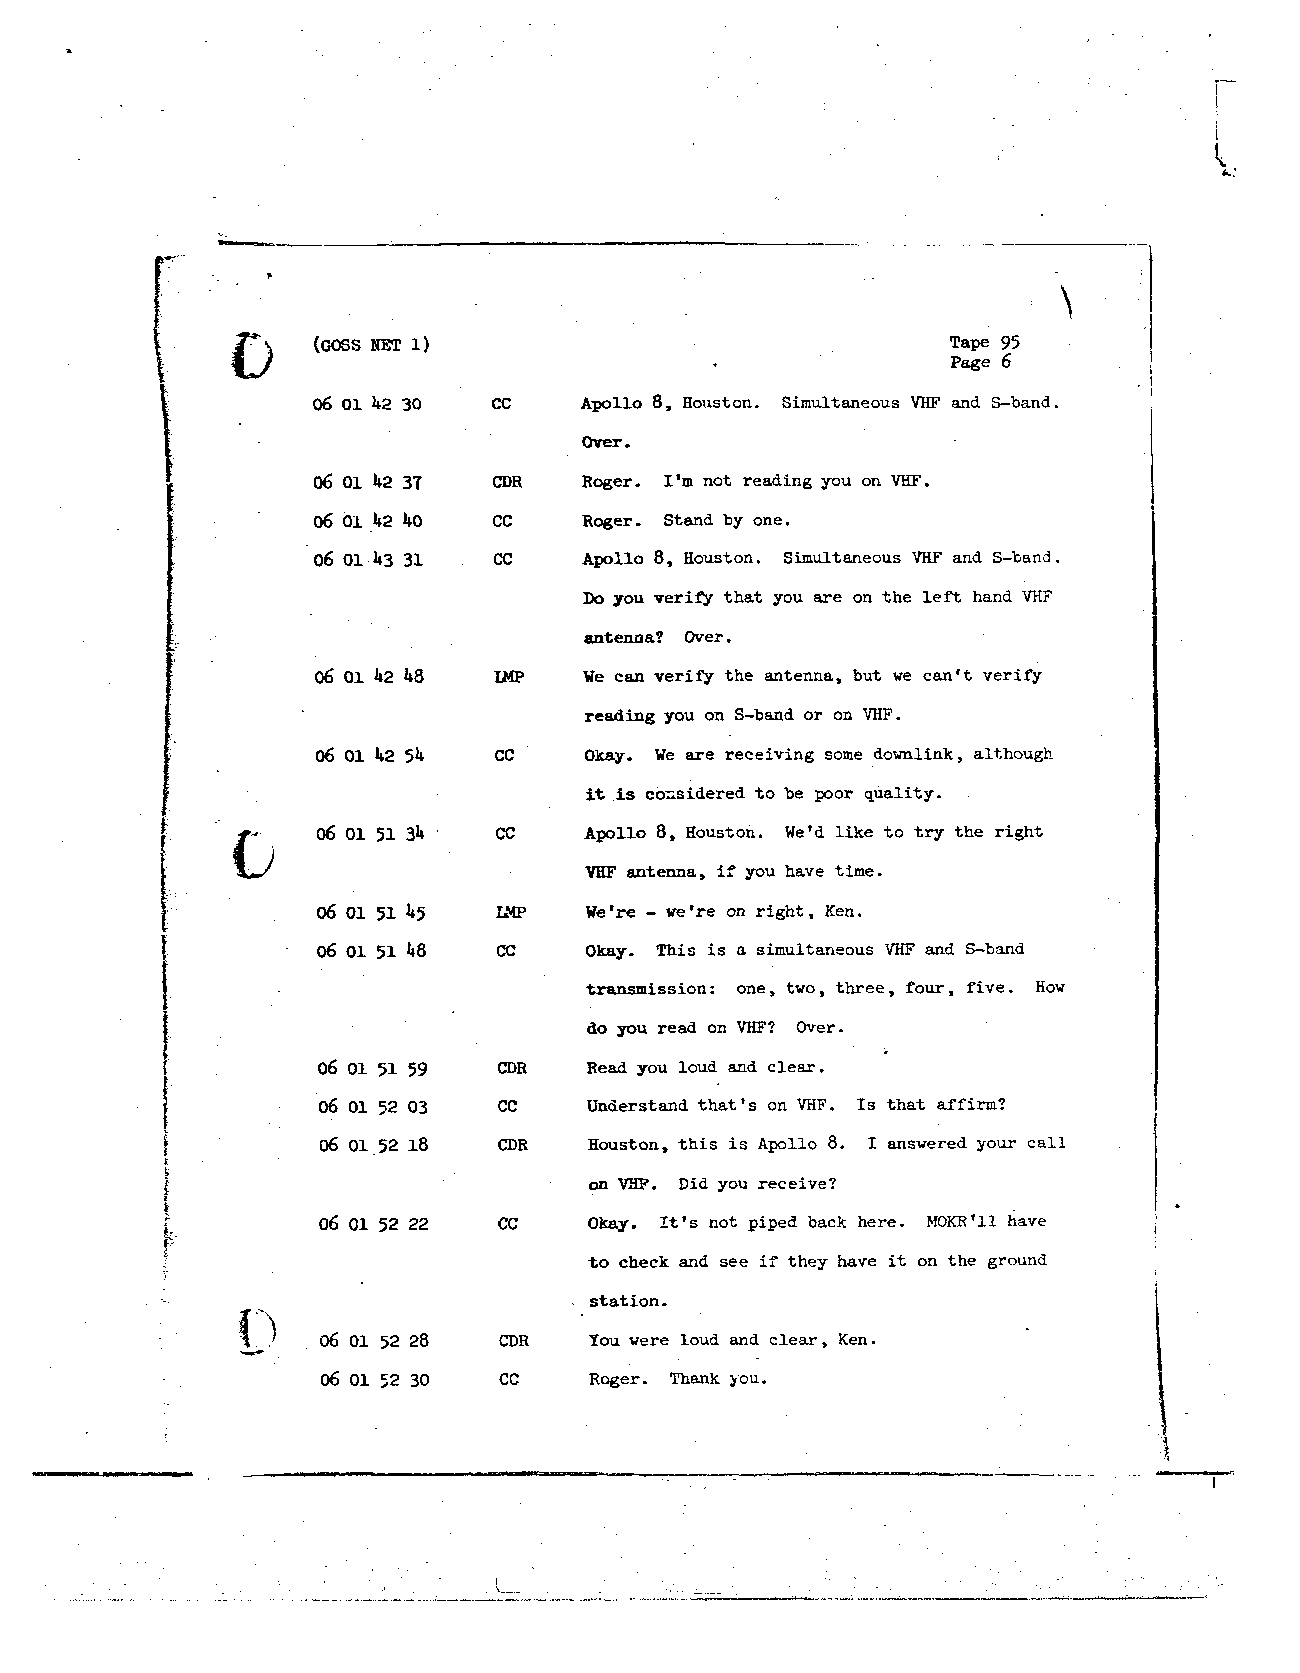 Page 752 of Apollo 8's original transcript